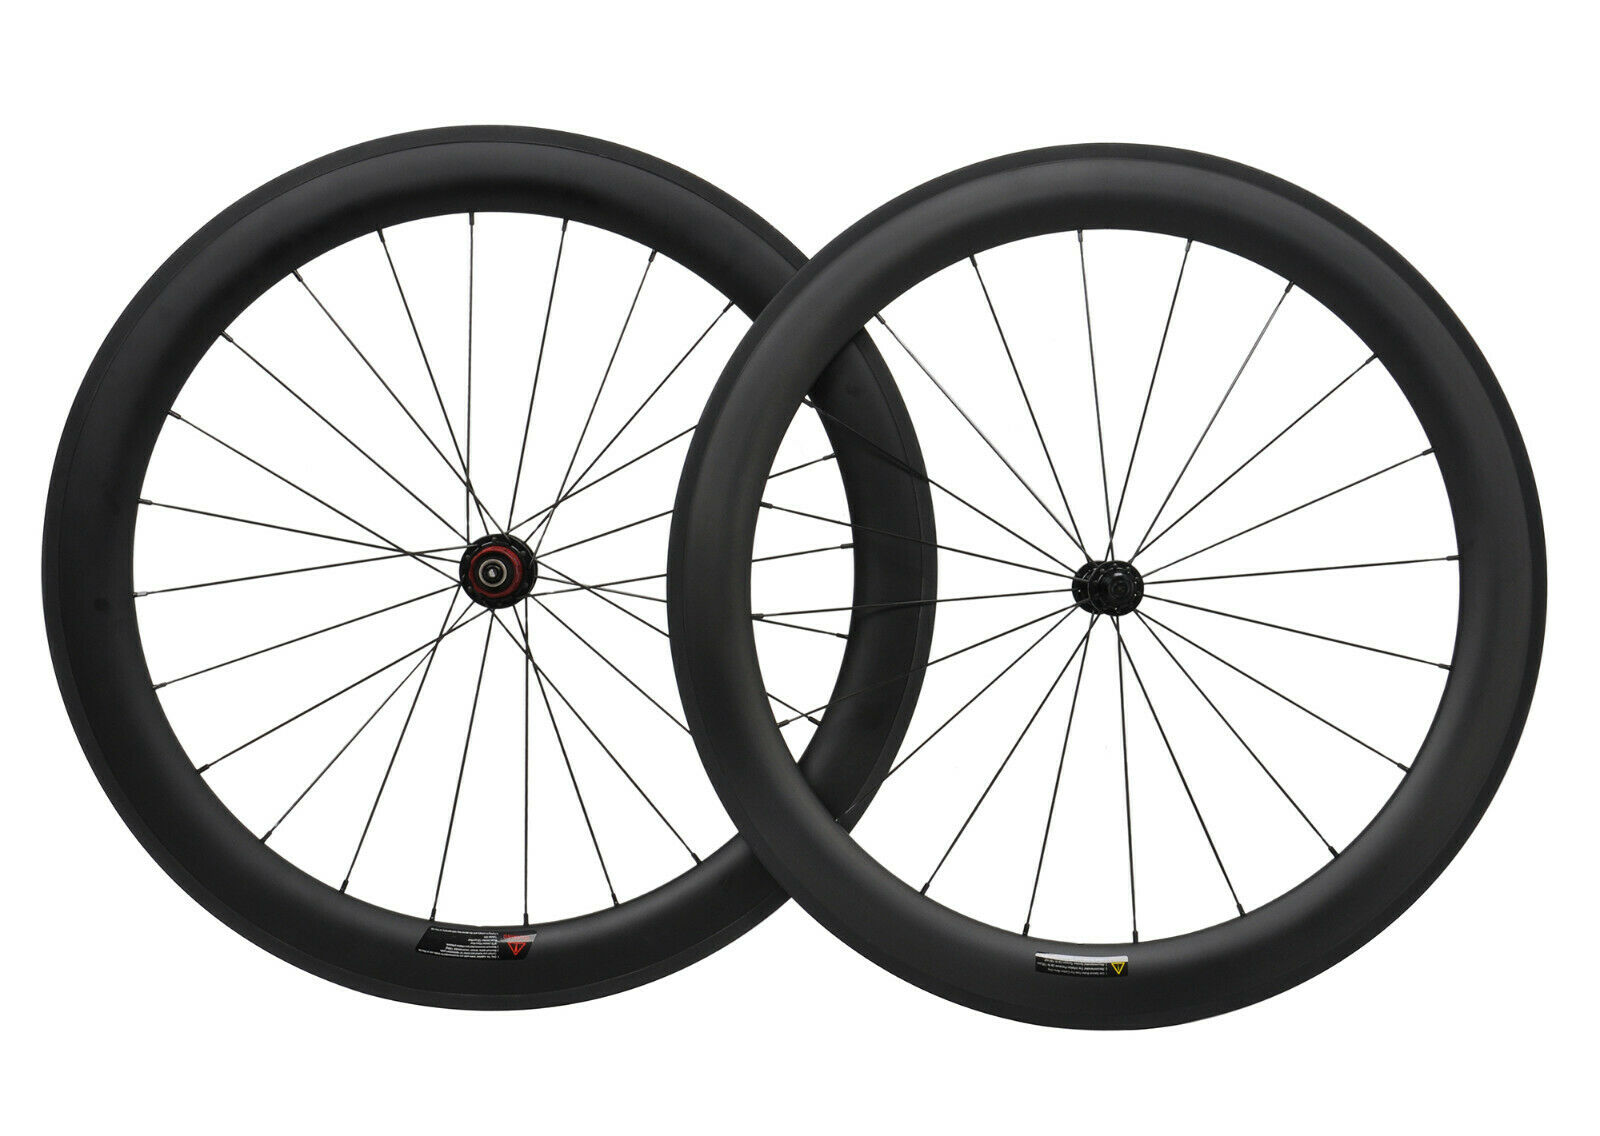 Sapim Carbon Wheels 60mm Clincher Road Bicycle wheelset 700C UD Matt Rim Novatec